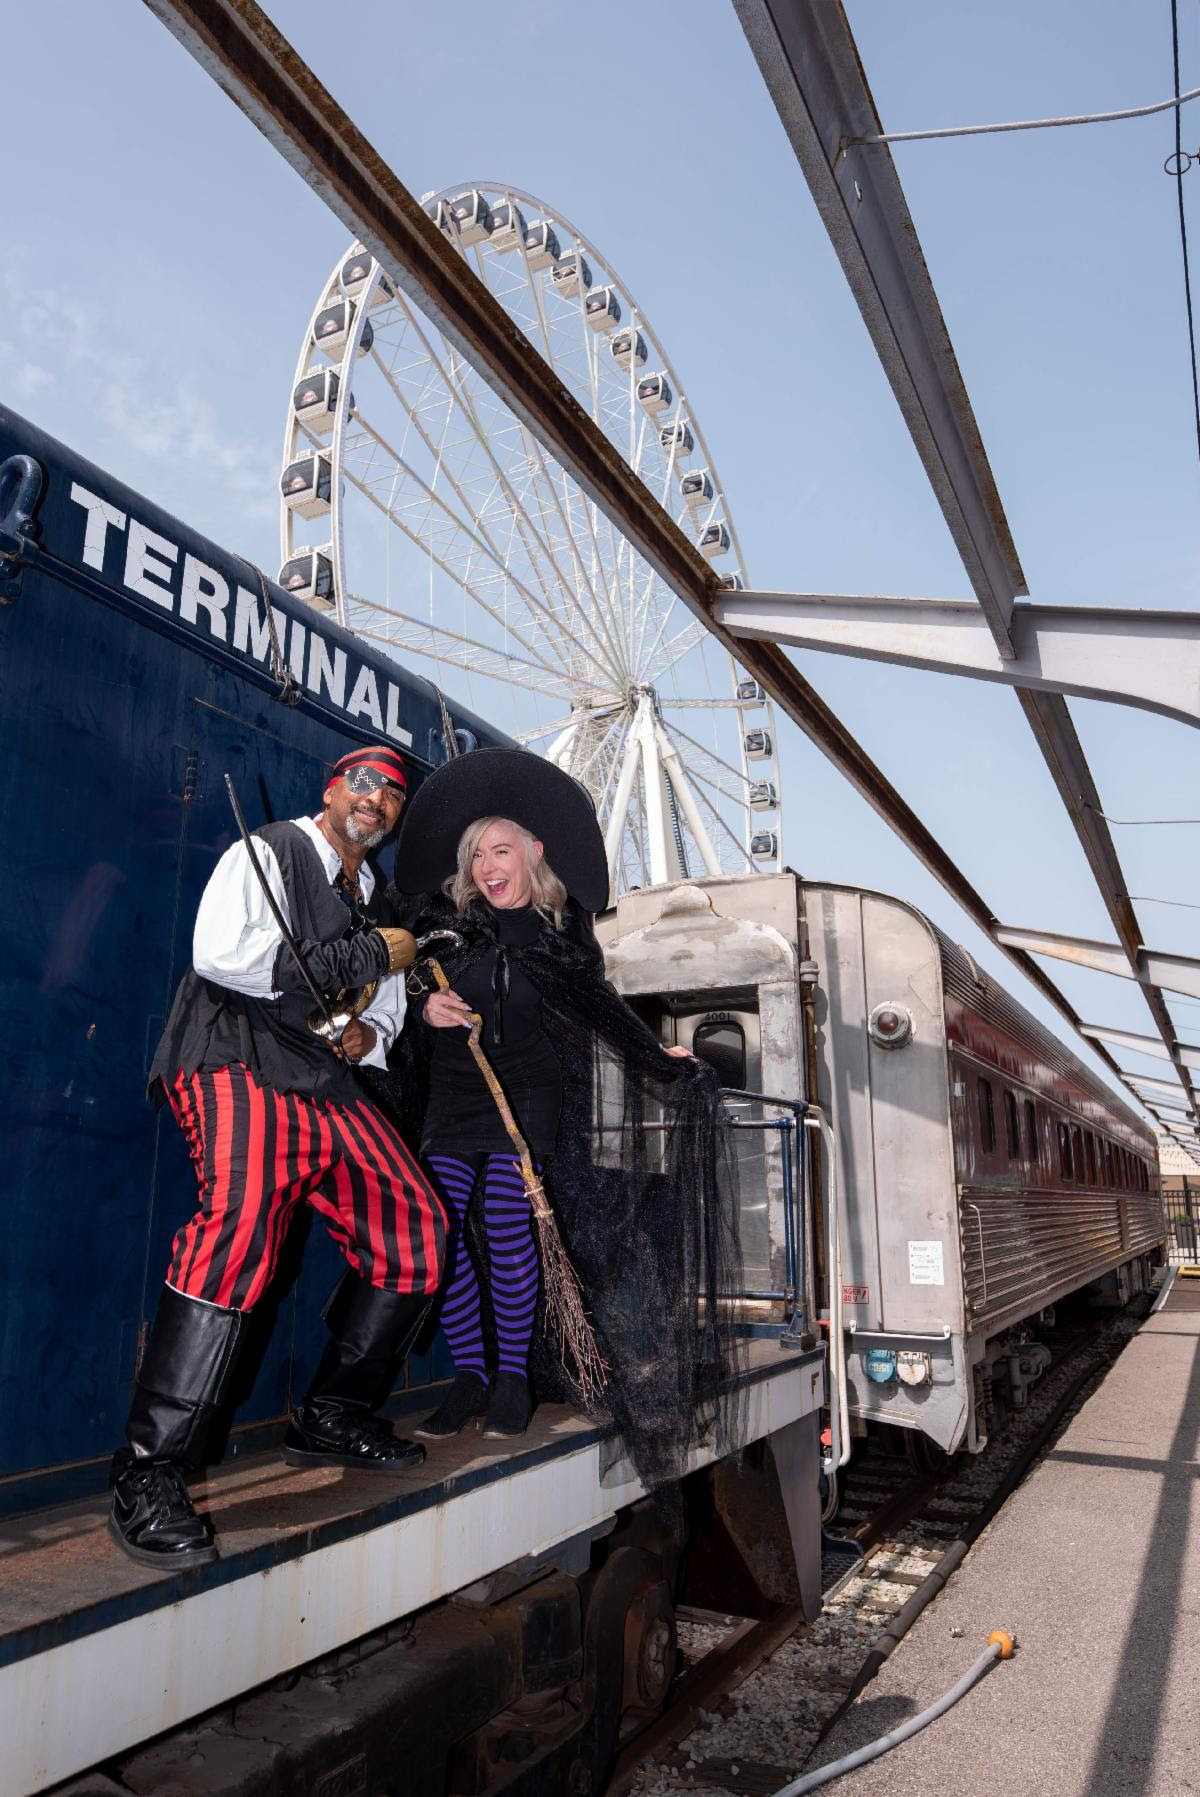 st louis wheel, halloween witch, halloween pirate, train car, st louis union station, train shed